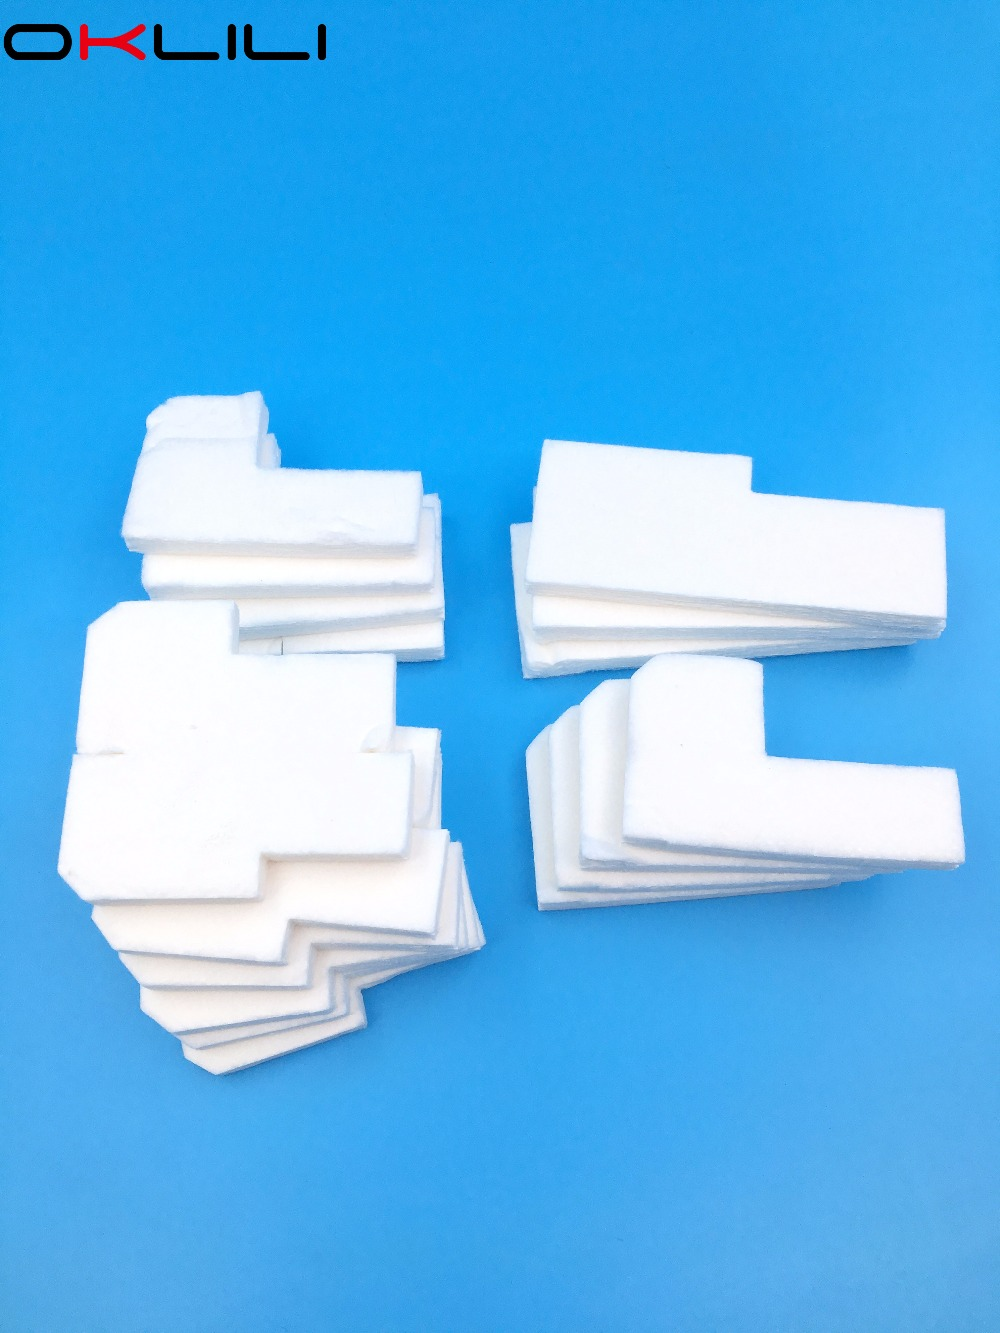 Office Electronics 2 Sets Original Waste Ink Tank Pad Sponge For Epson T50 T60 P50 P60 A50 L800 L801 L805 R280 R290 R330 Rx600 Rx610 Rx690 Px650